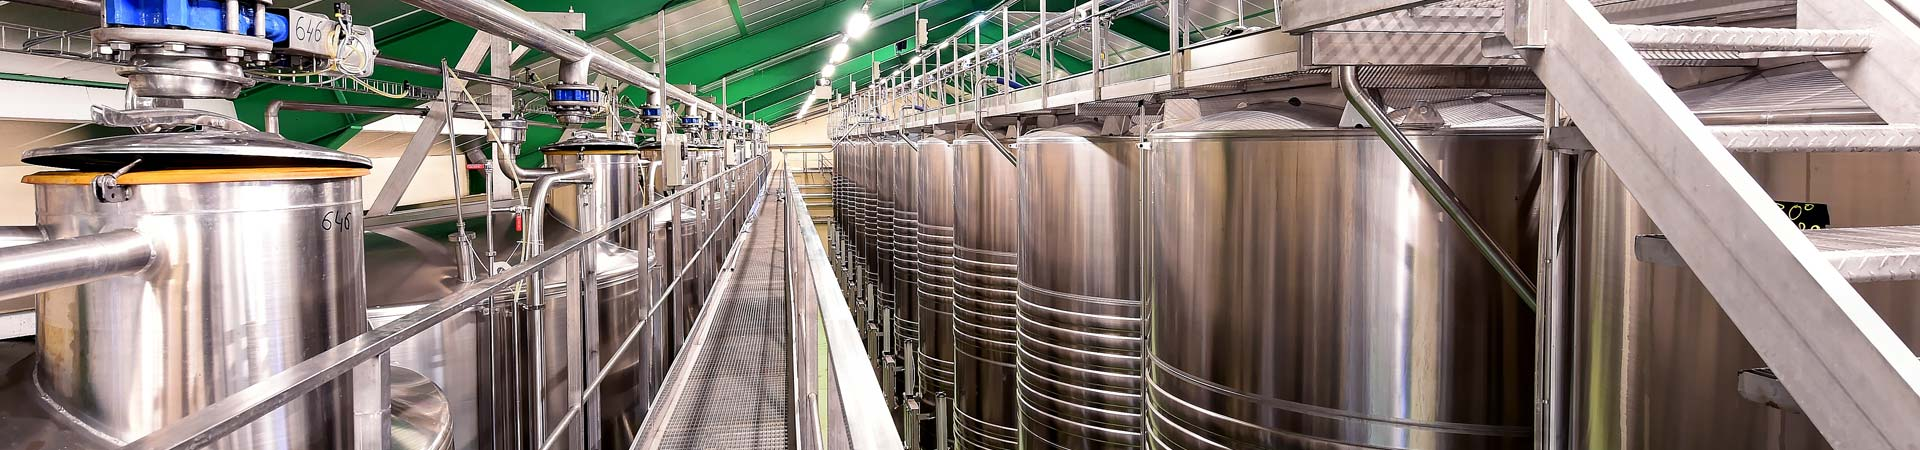 Management of fermentation temperatures, cooling processes from Pera Pellenc, winemaking equipment